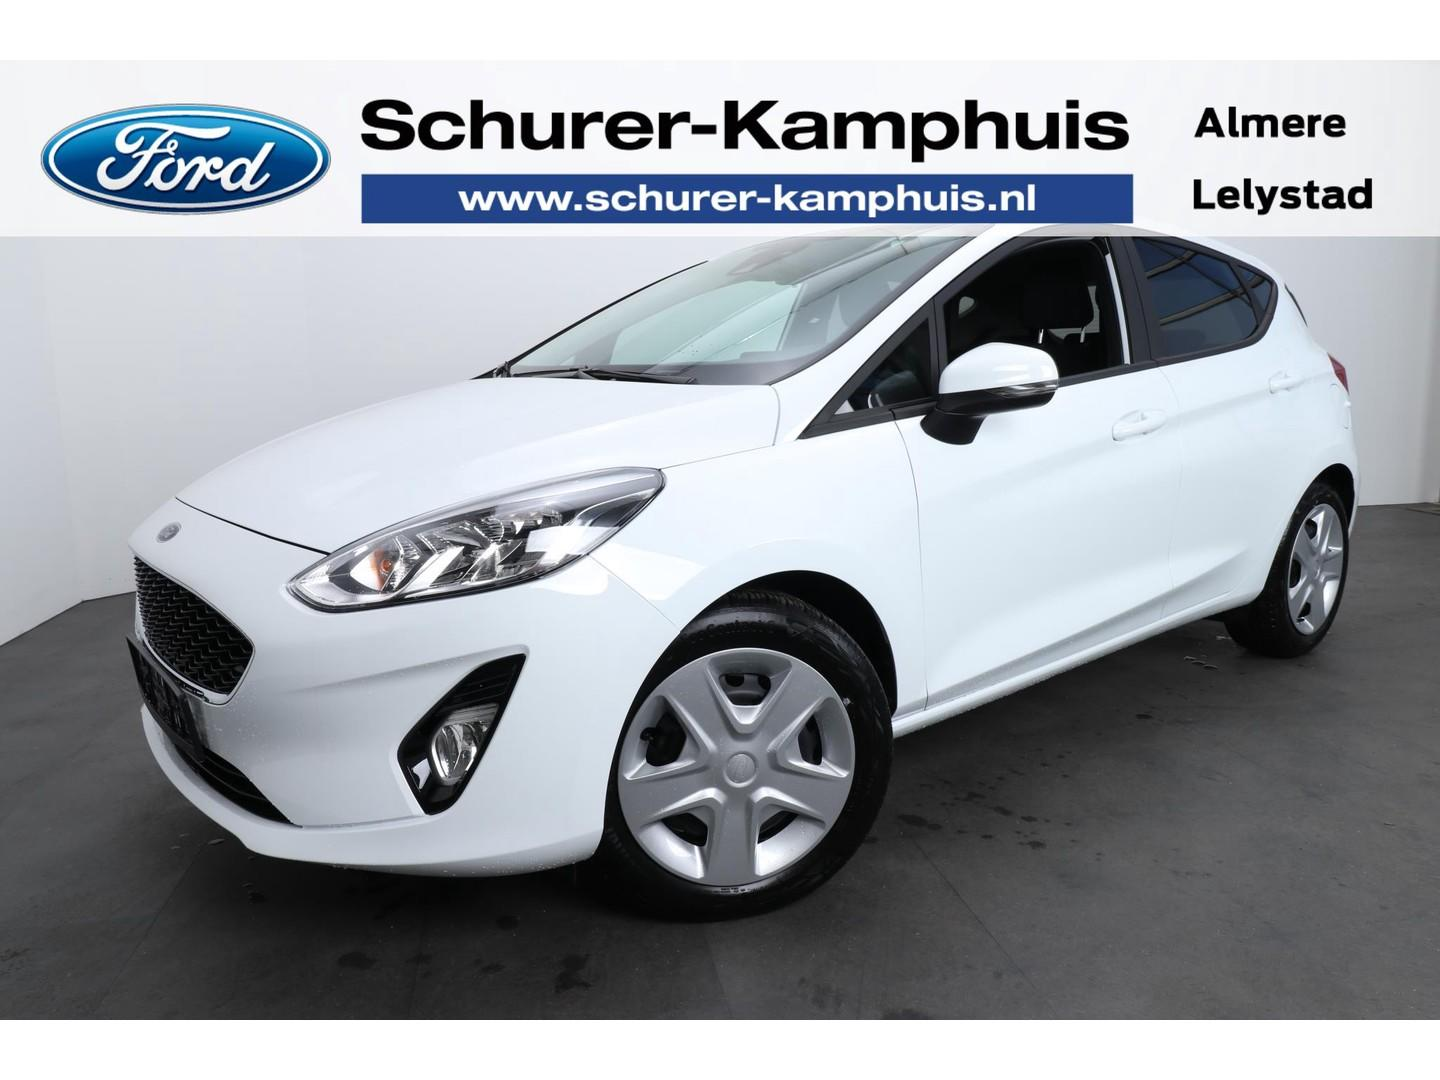 Ford Fiesta 1.0 ecoboost connected €1150 fordvoordeel apple carplay/ android auto airco cruise control